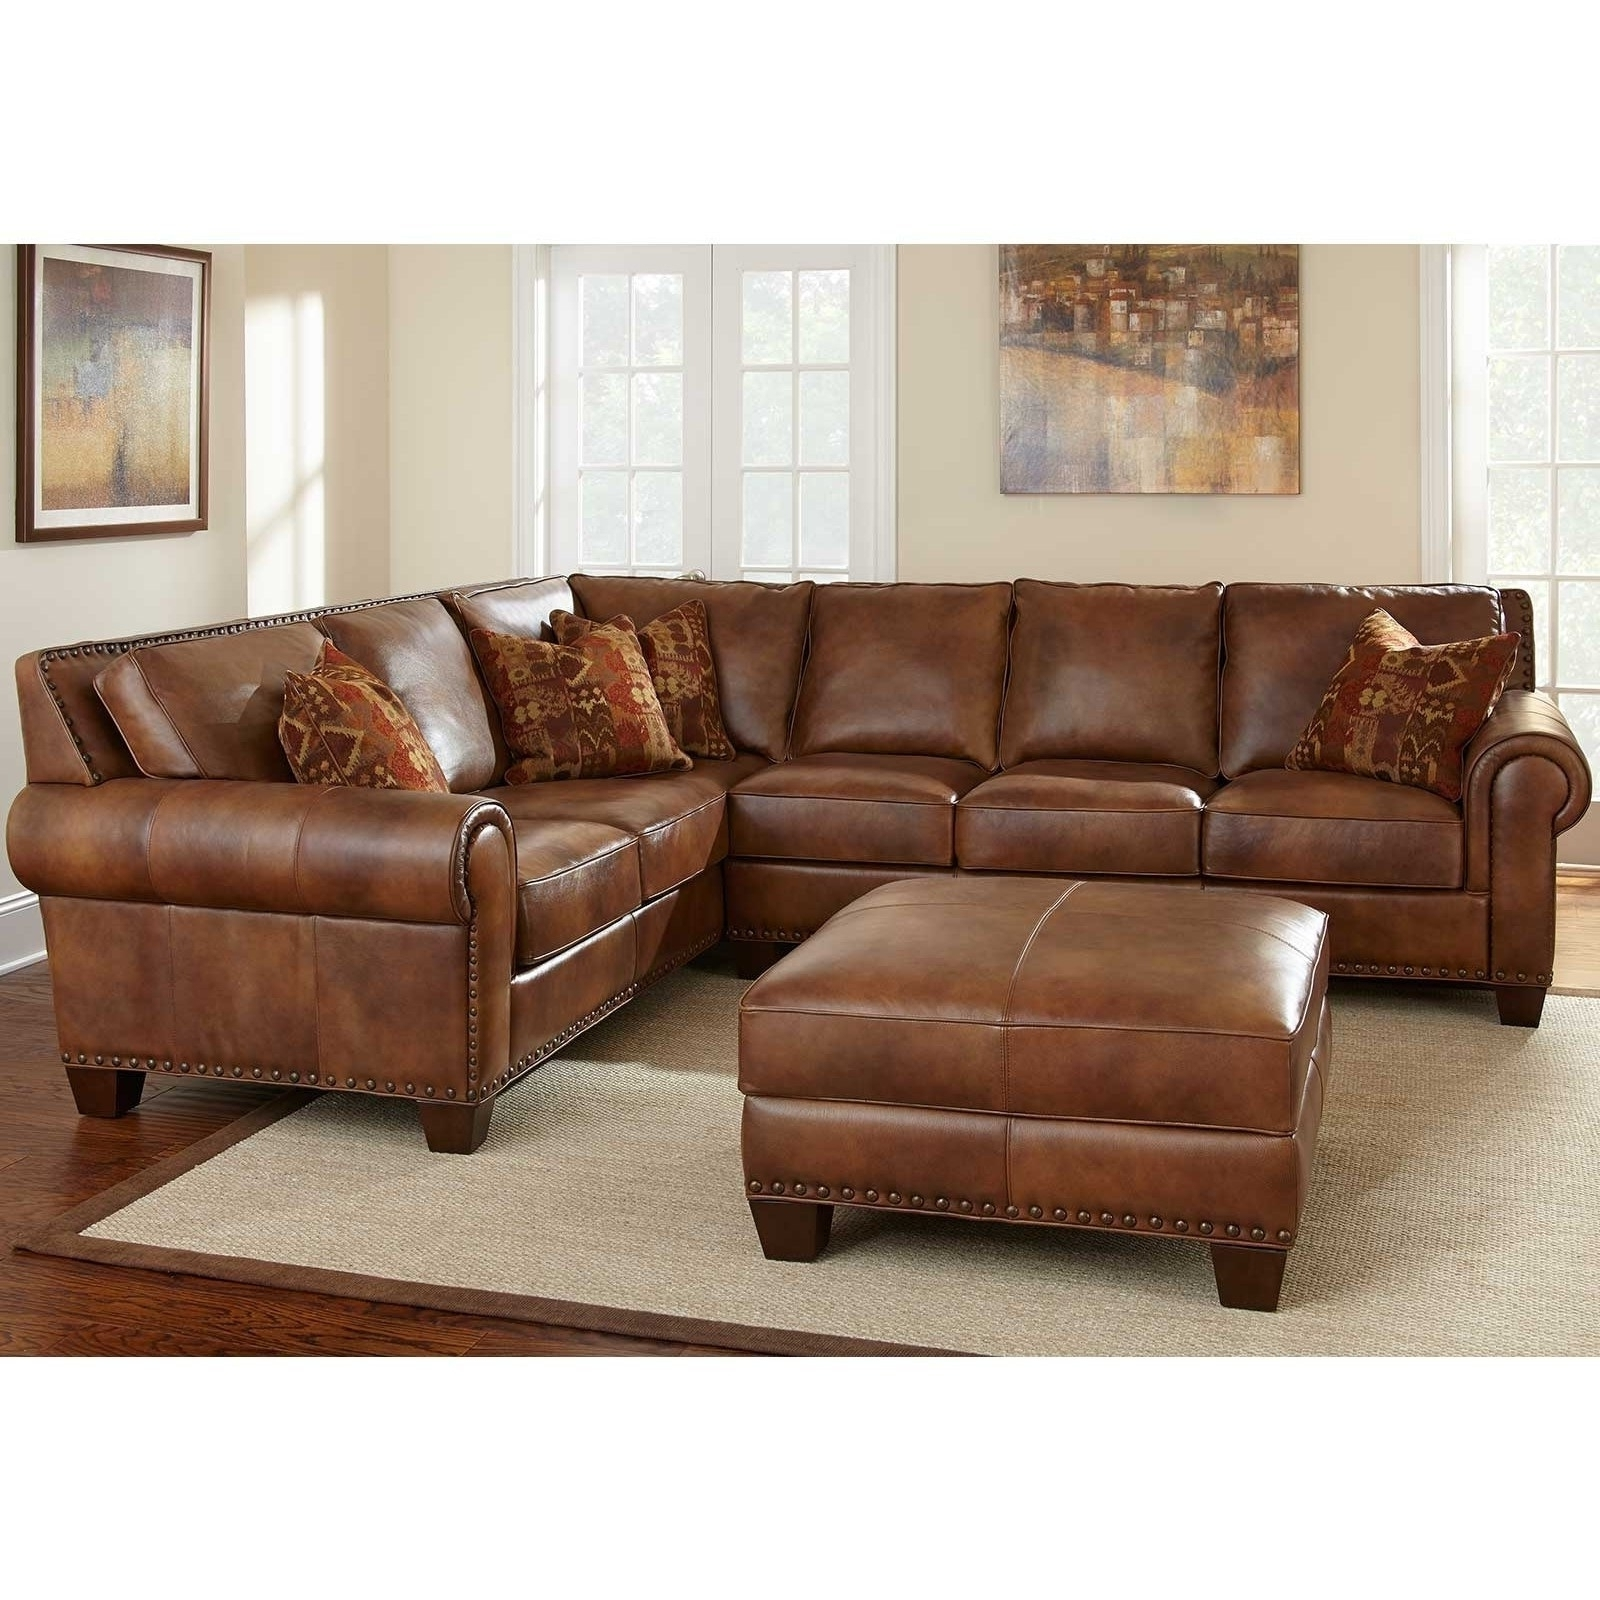 20 Best Macys Leather Sofas